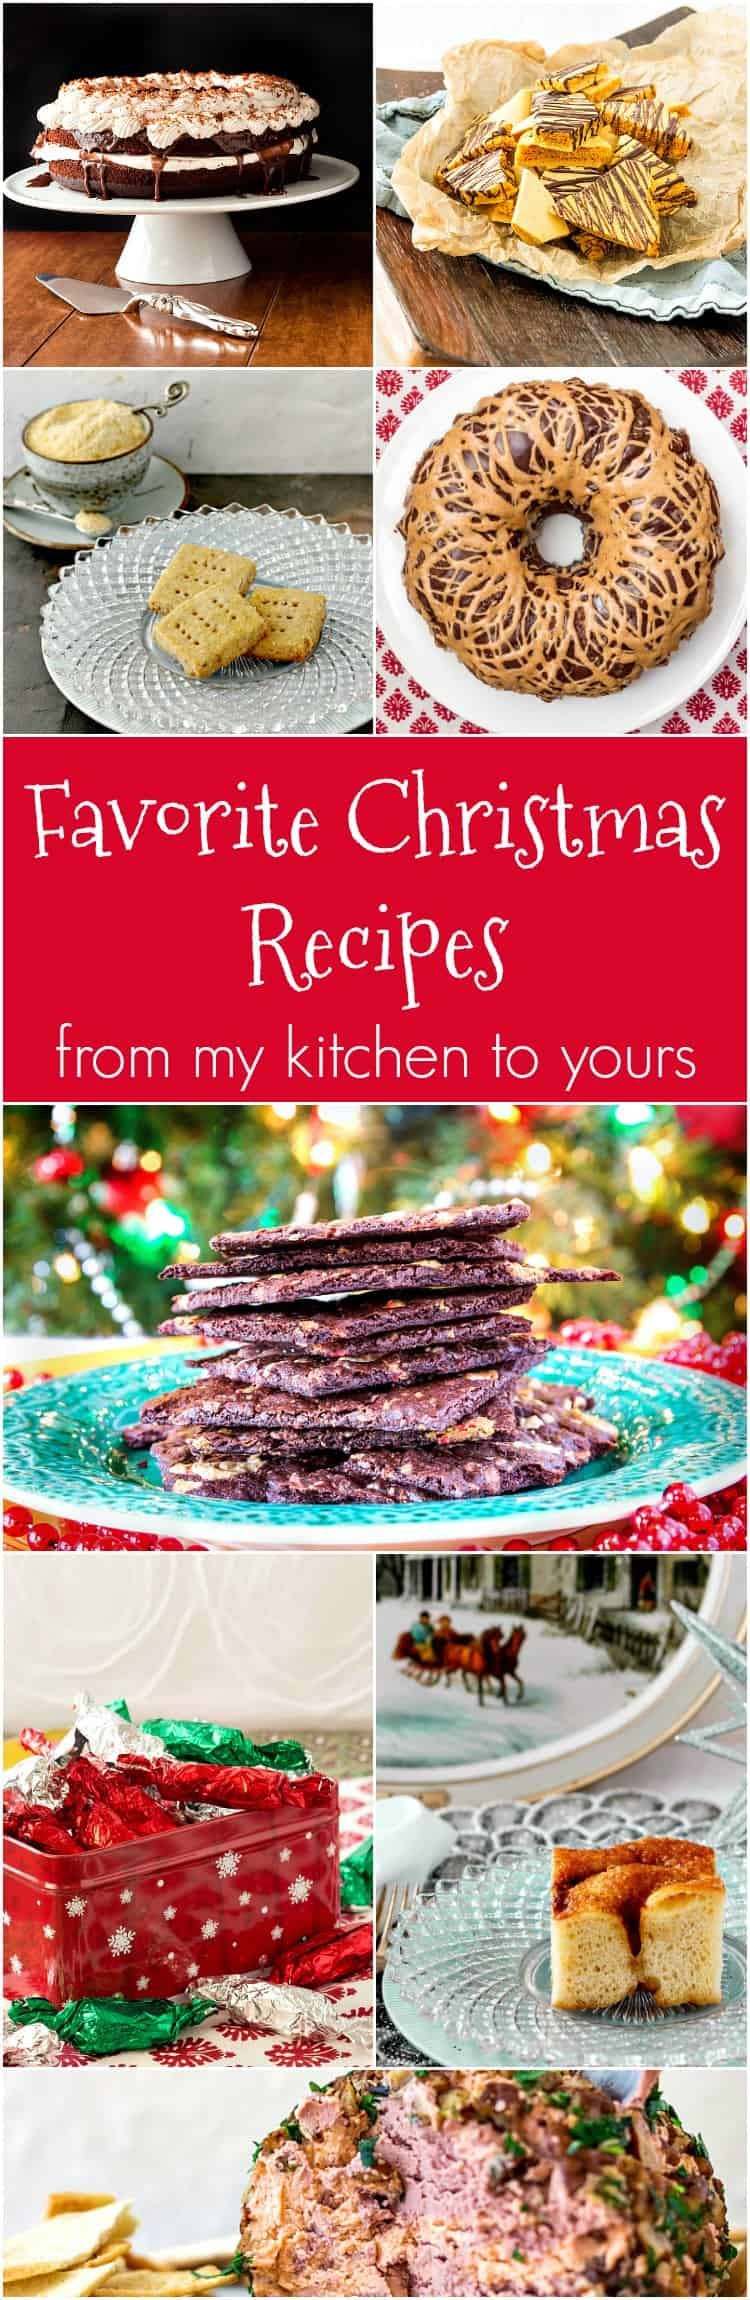 I hope you enjoy this collection of favorite christmas recipes. Some are for party favorites, and many are for desserts and sweets. And gifting! Enjoy!